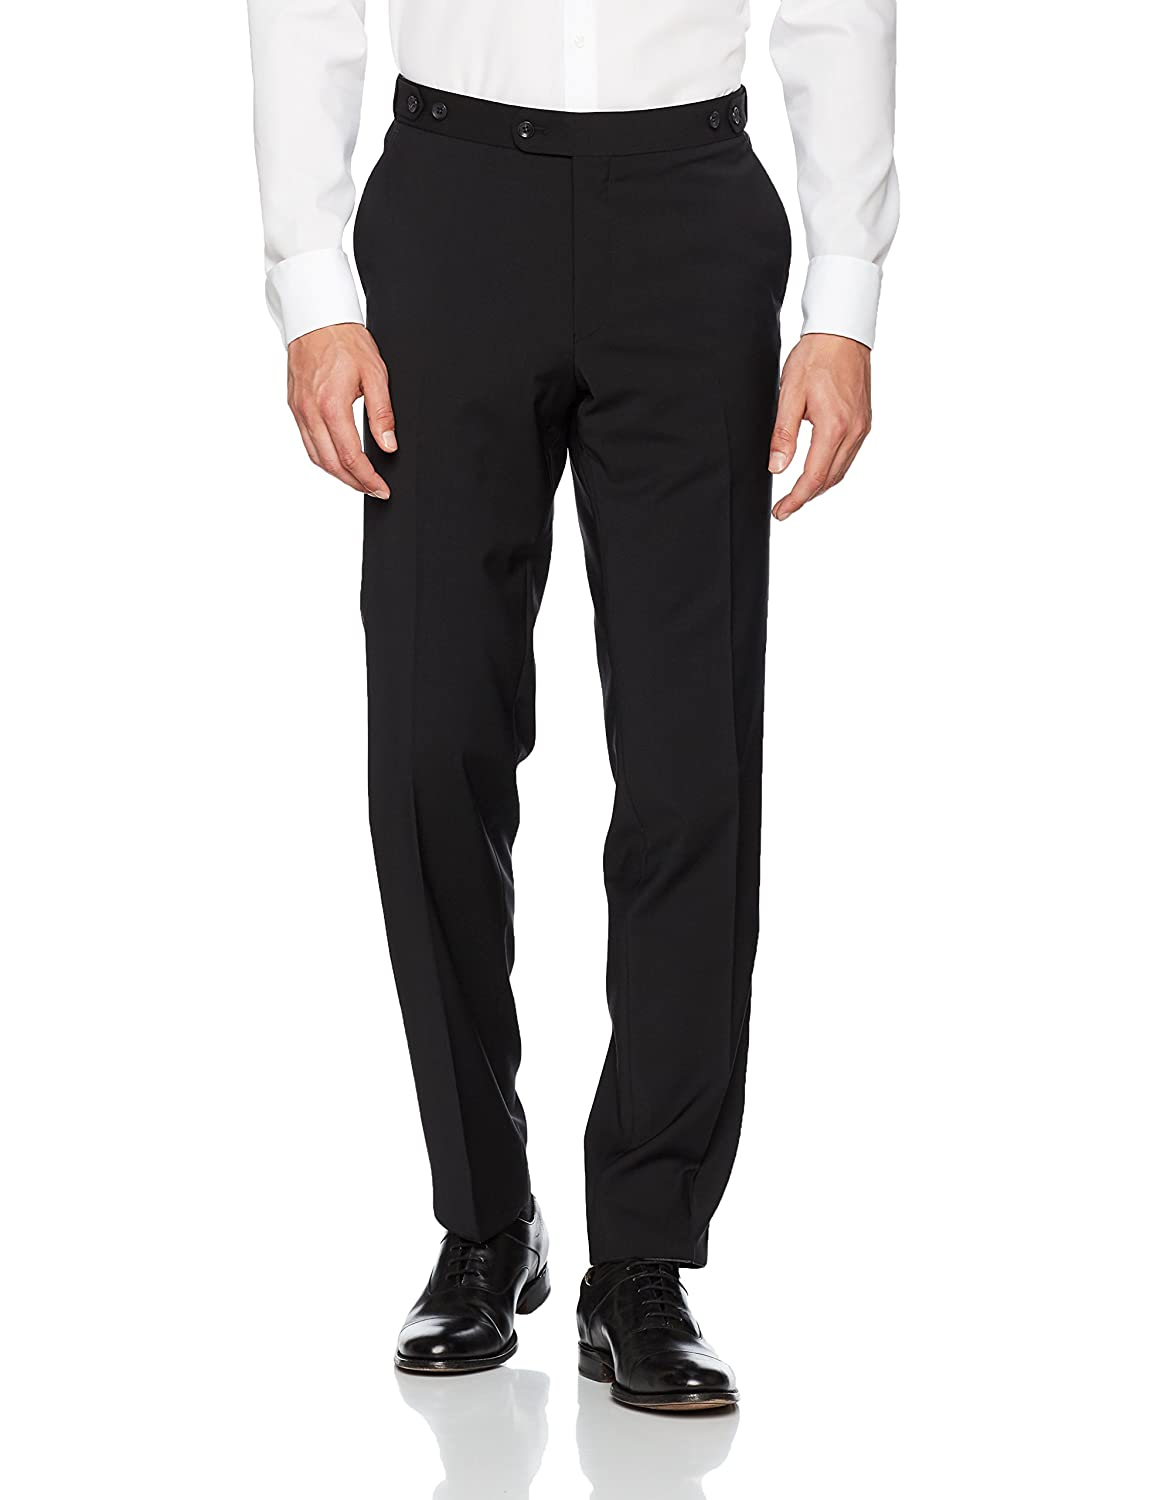 CARL GROSS CG Wesley, Men's Trousers Men's Trousers 57-0013